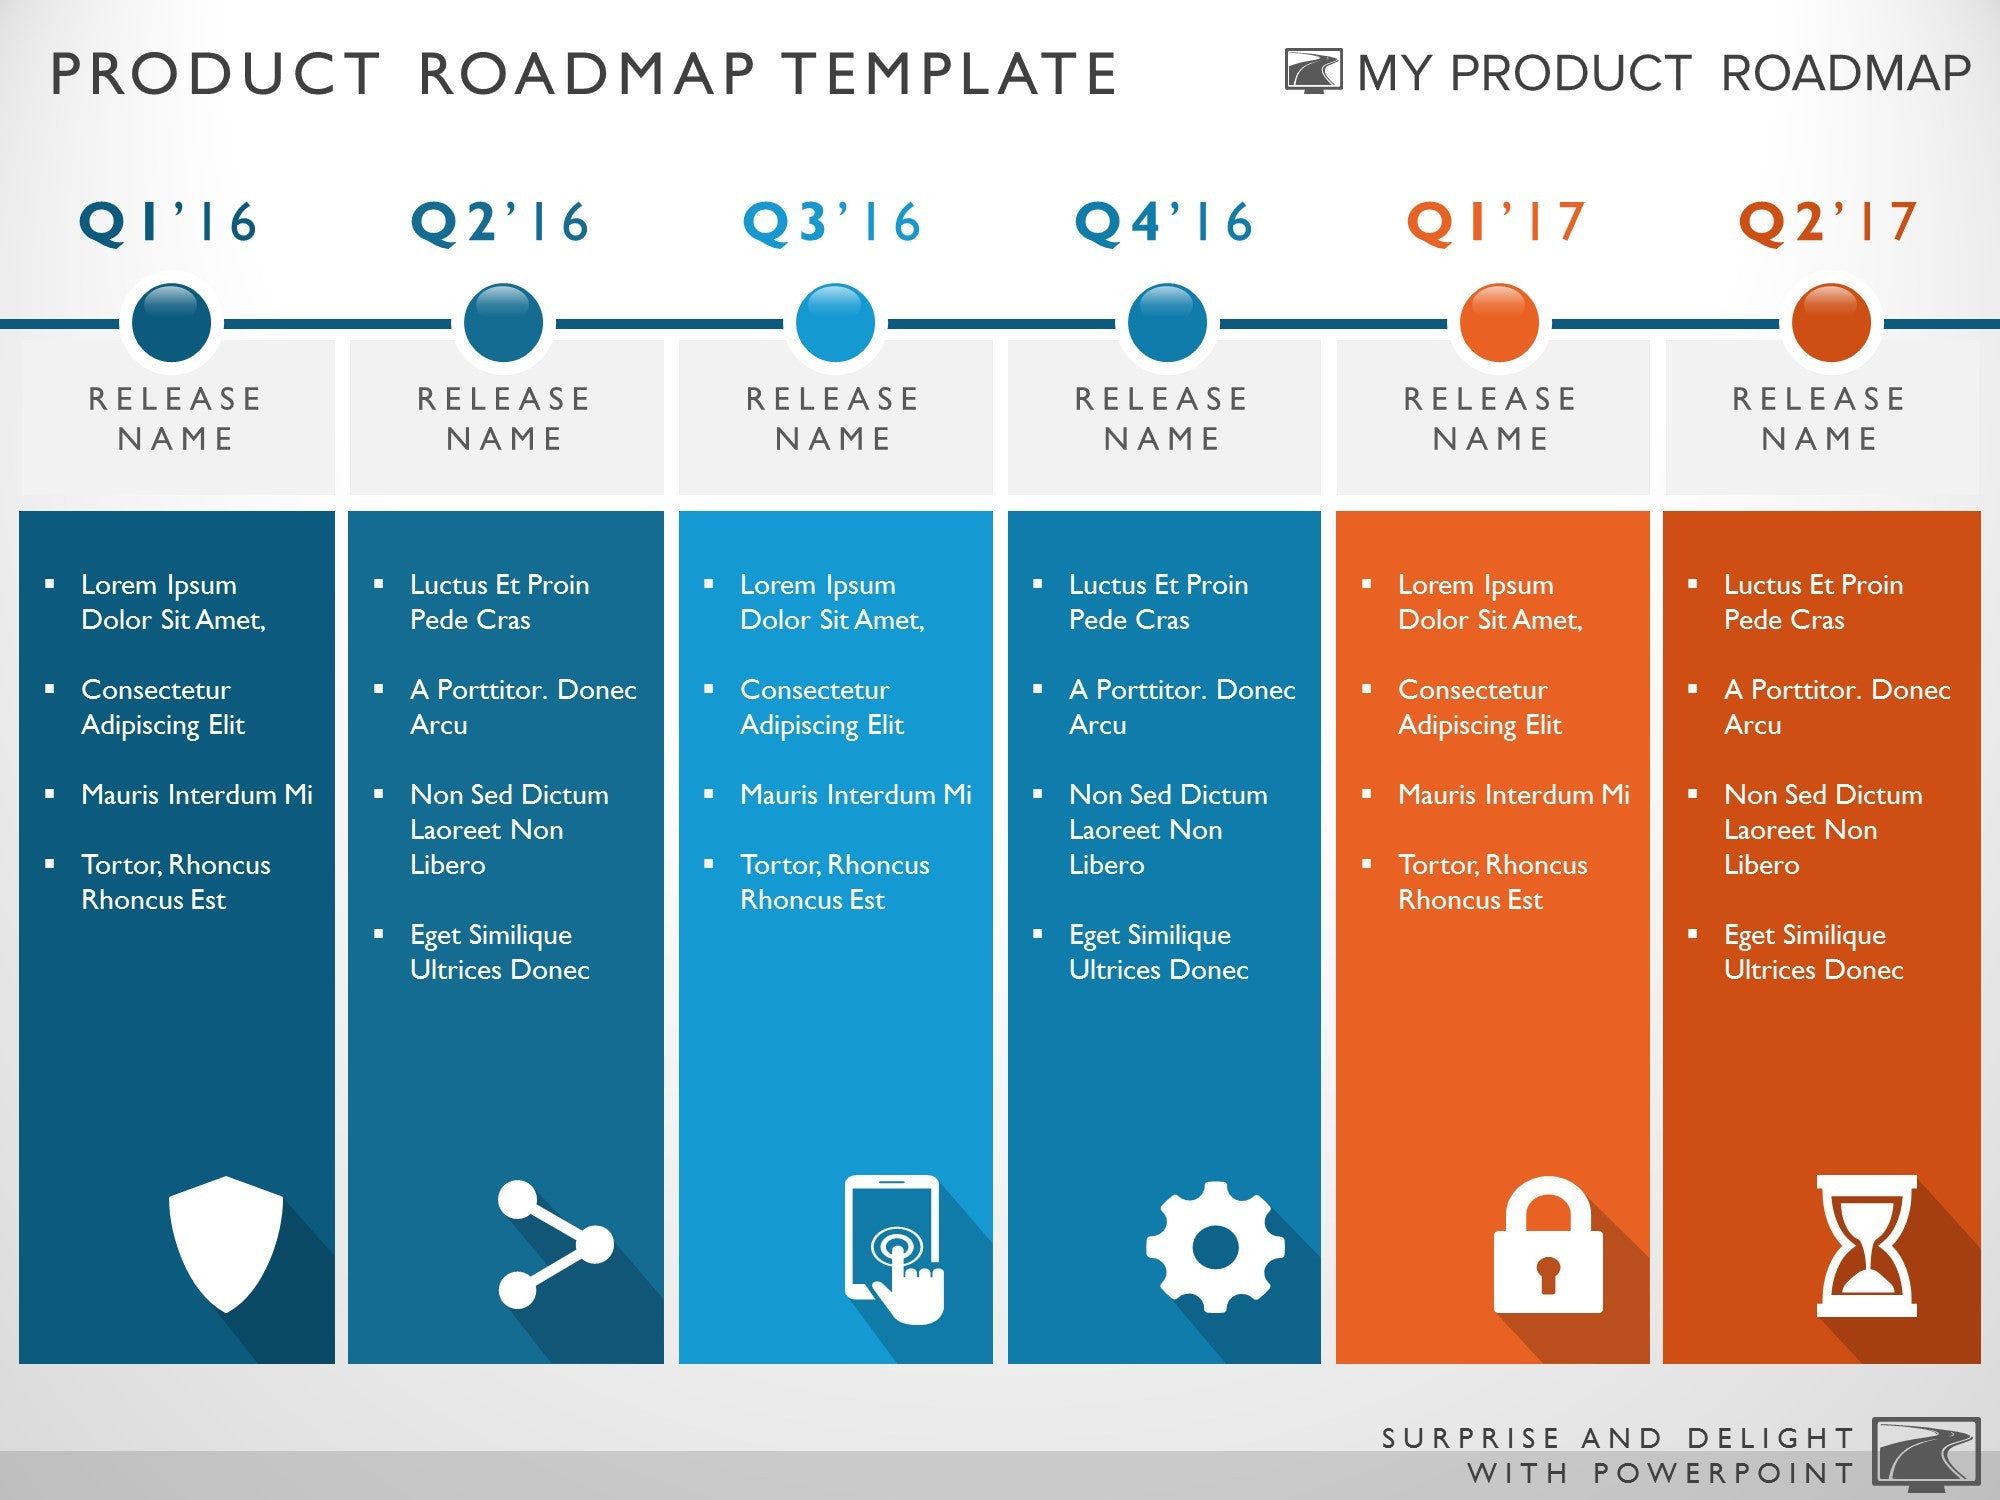 product roadmap ppt - hola.klonec.co, Agile Roadmap Powerpoint Template, Powerpoint templates